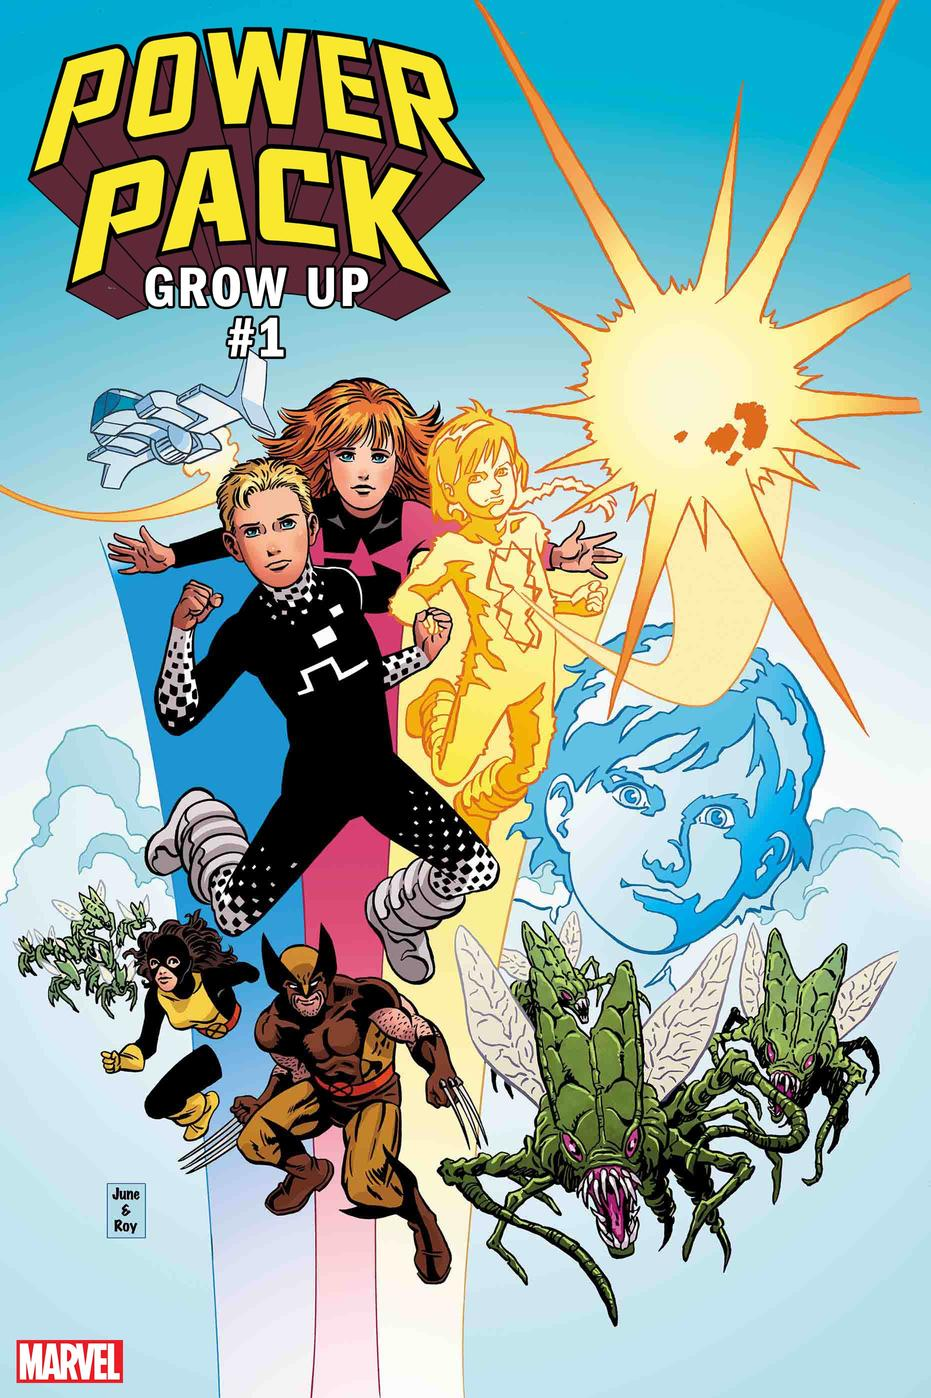 Power Pack: Grow Up #1